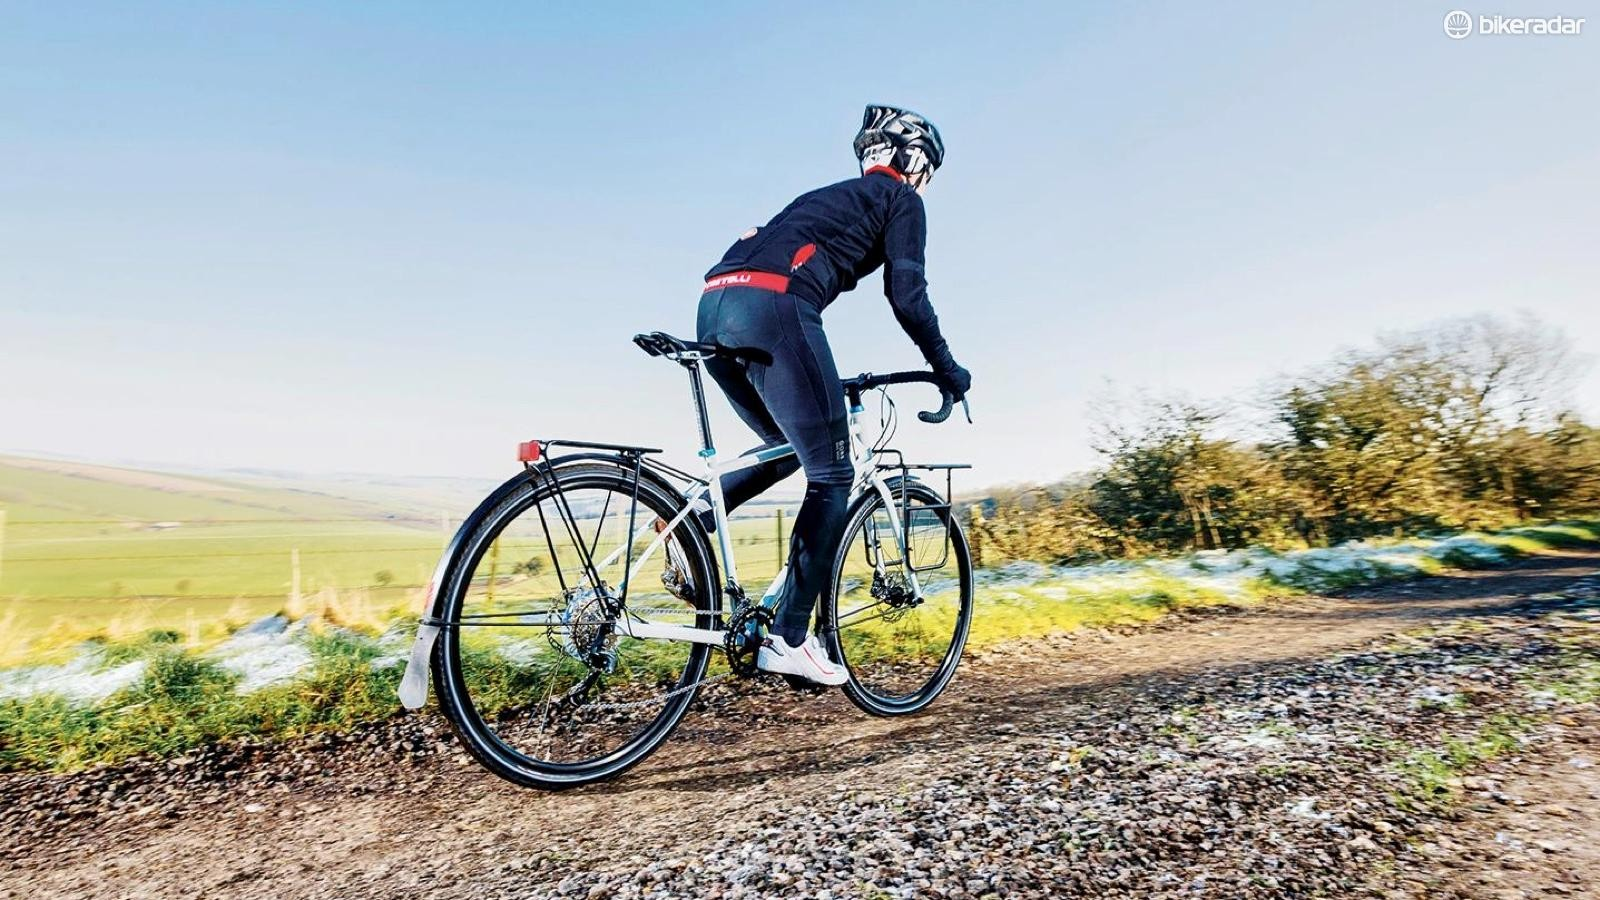 Touring bikes are built to go on roads less travelled, and also make excellent commuters for rough city roads